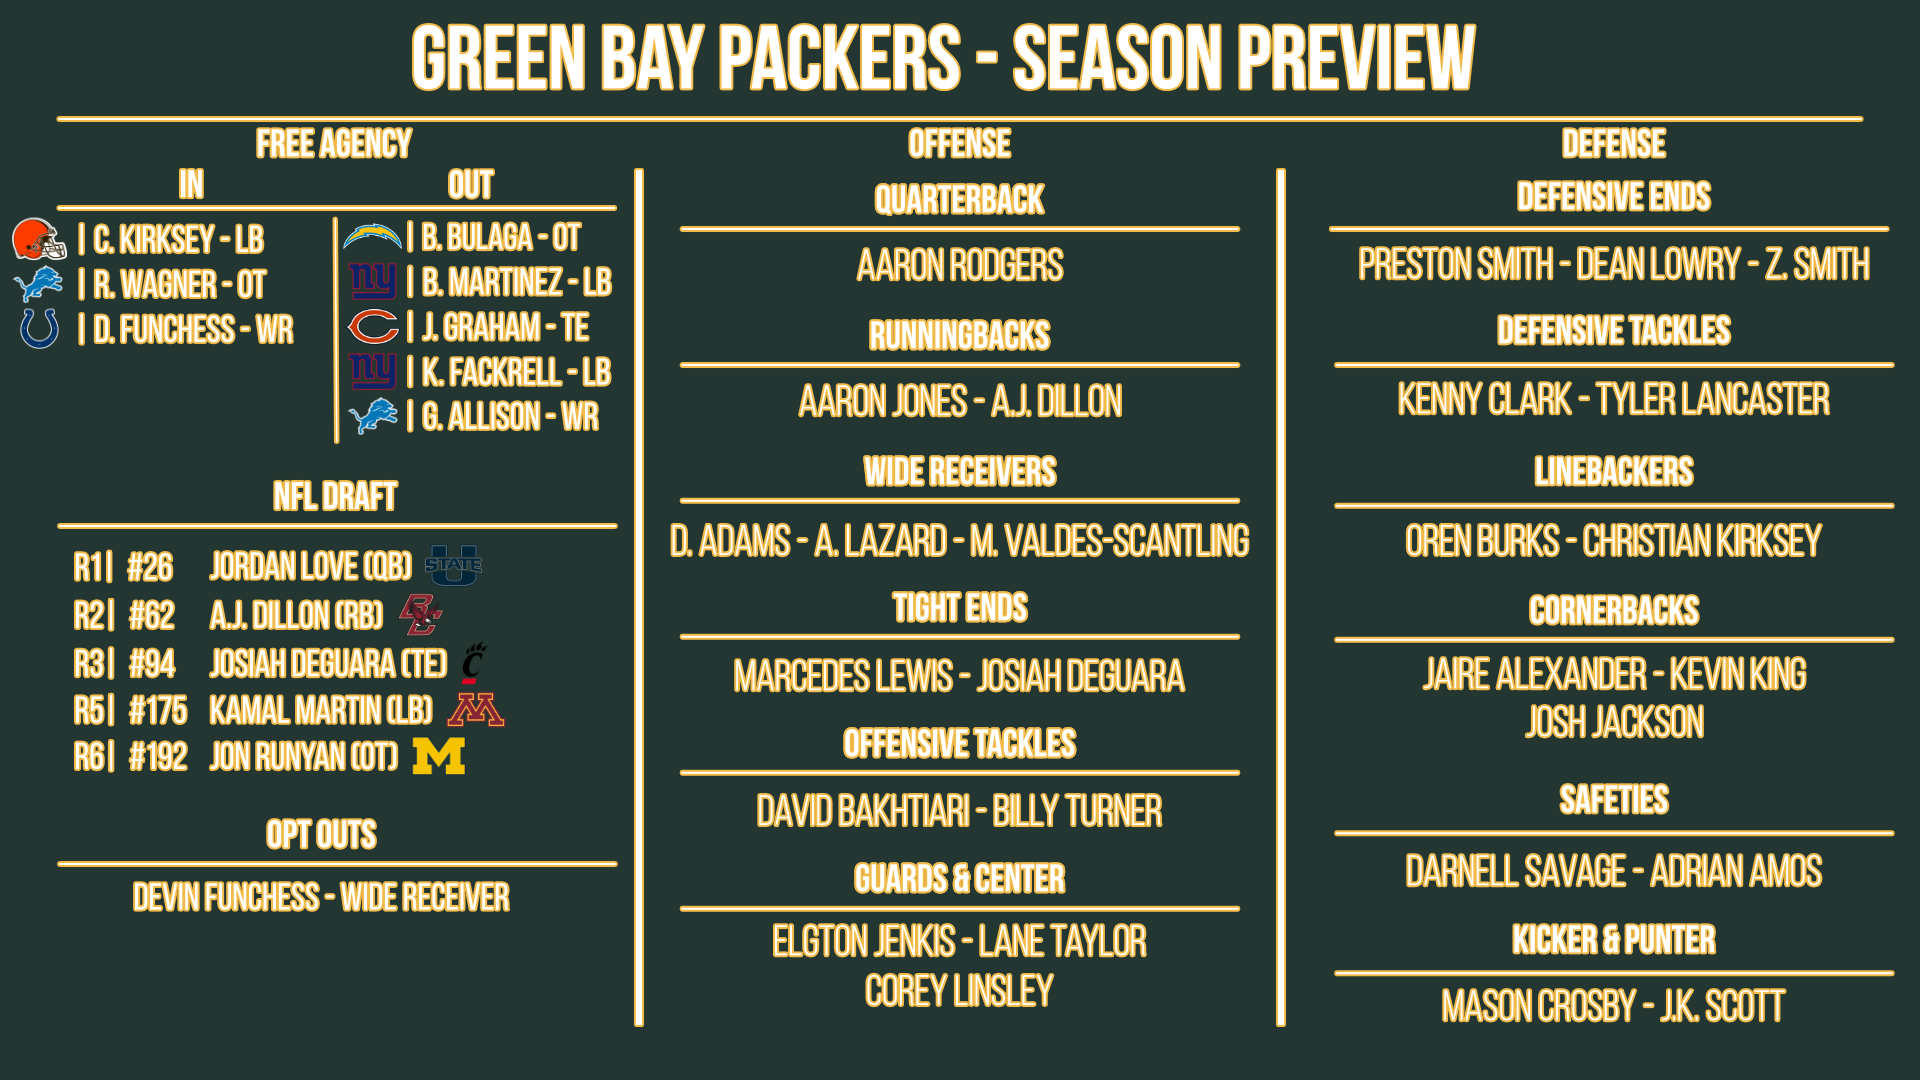 Green Bay Packers preview